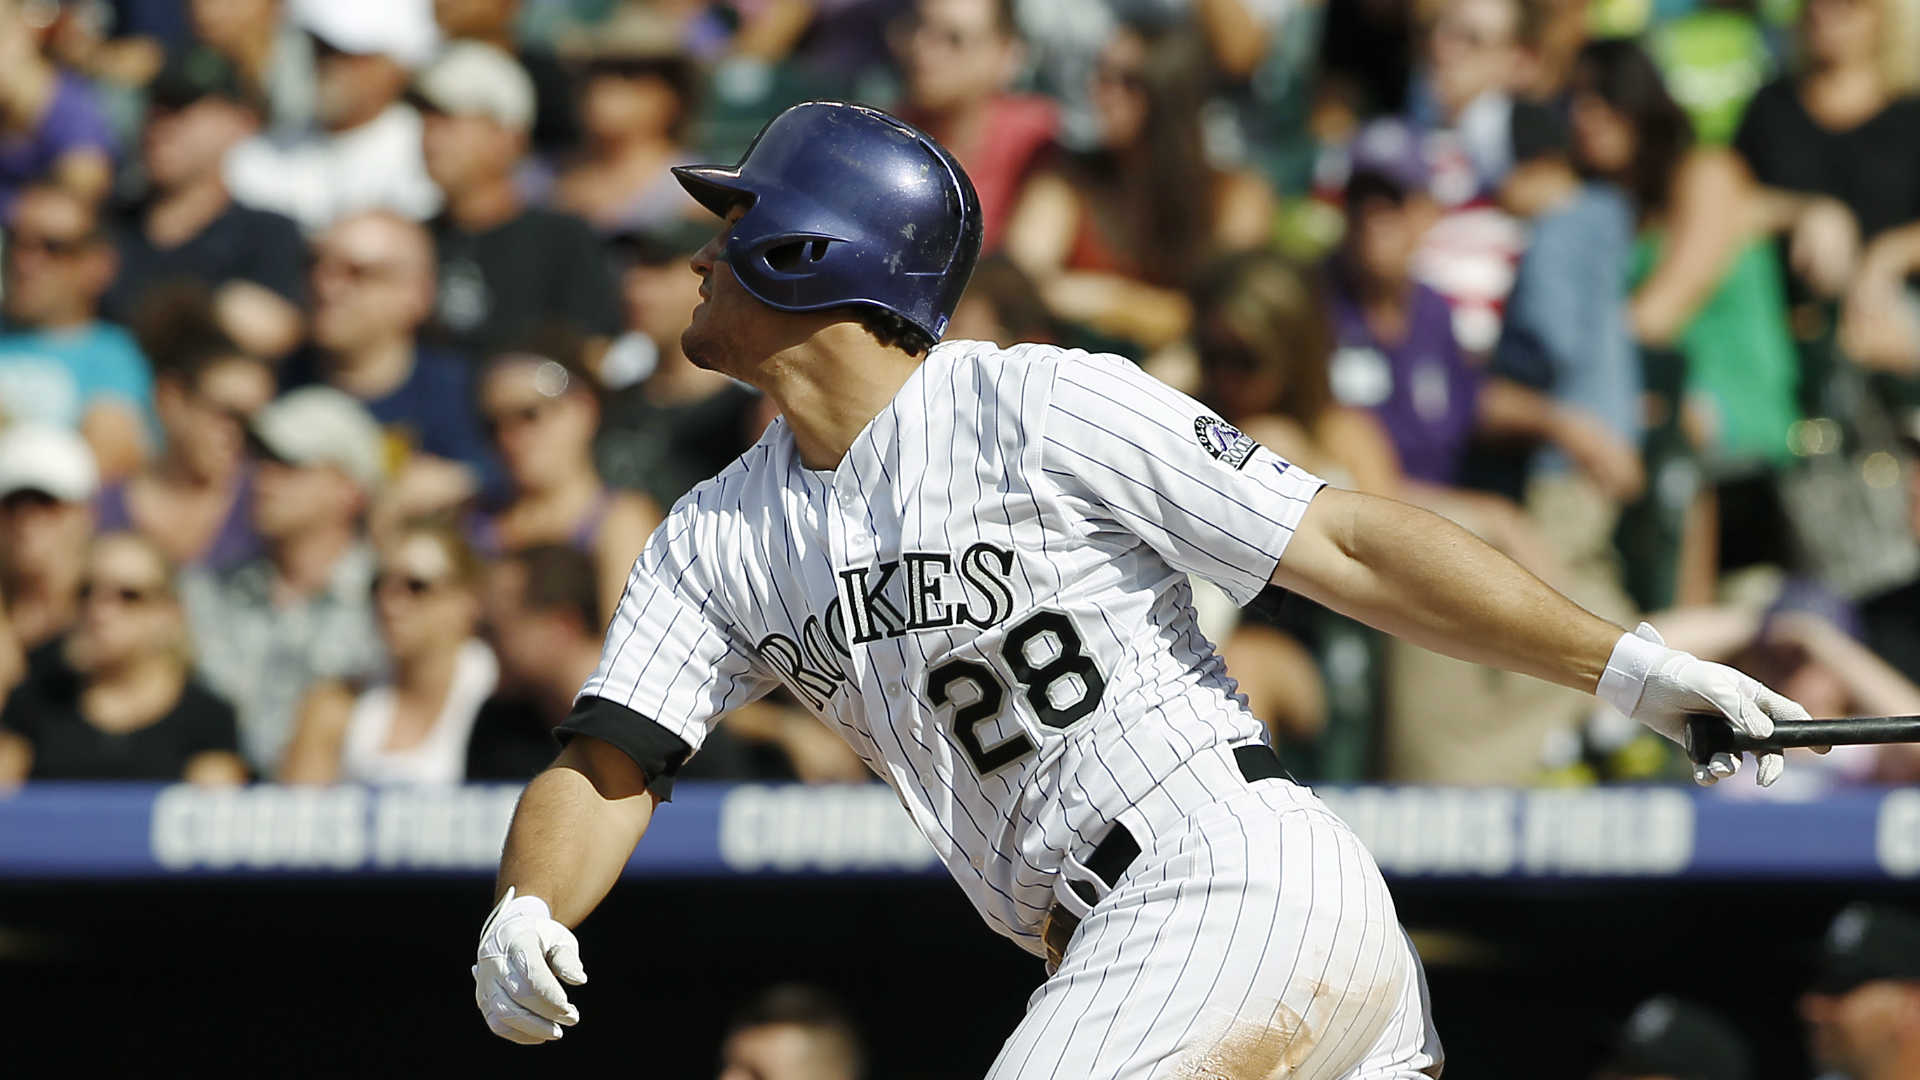 Highlight these 3B breakouts in your 2014 fantasy baseball rankings